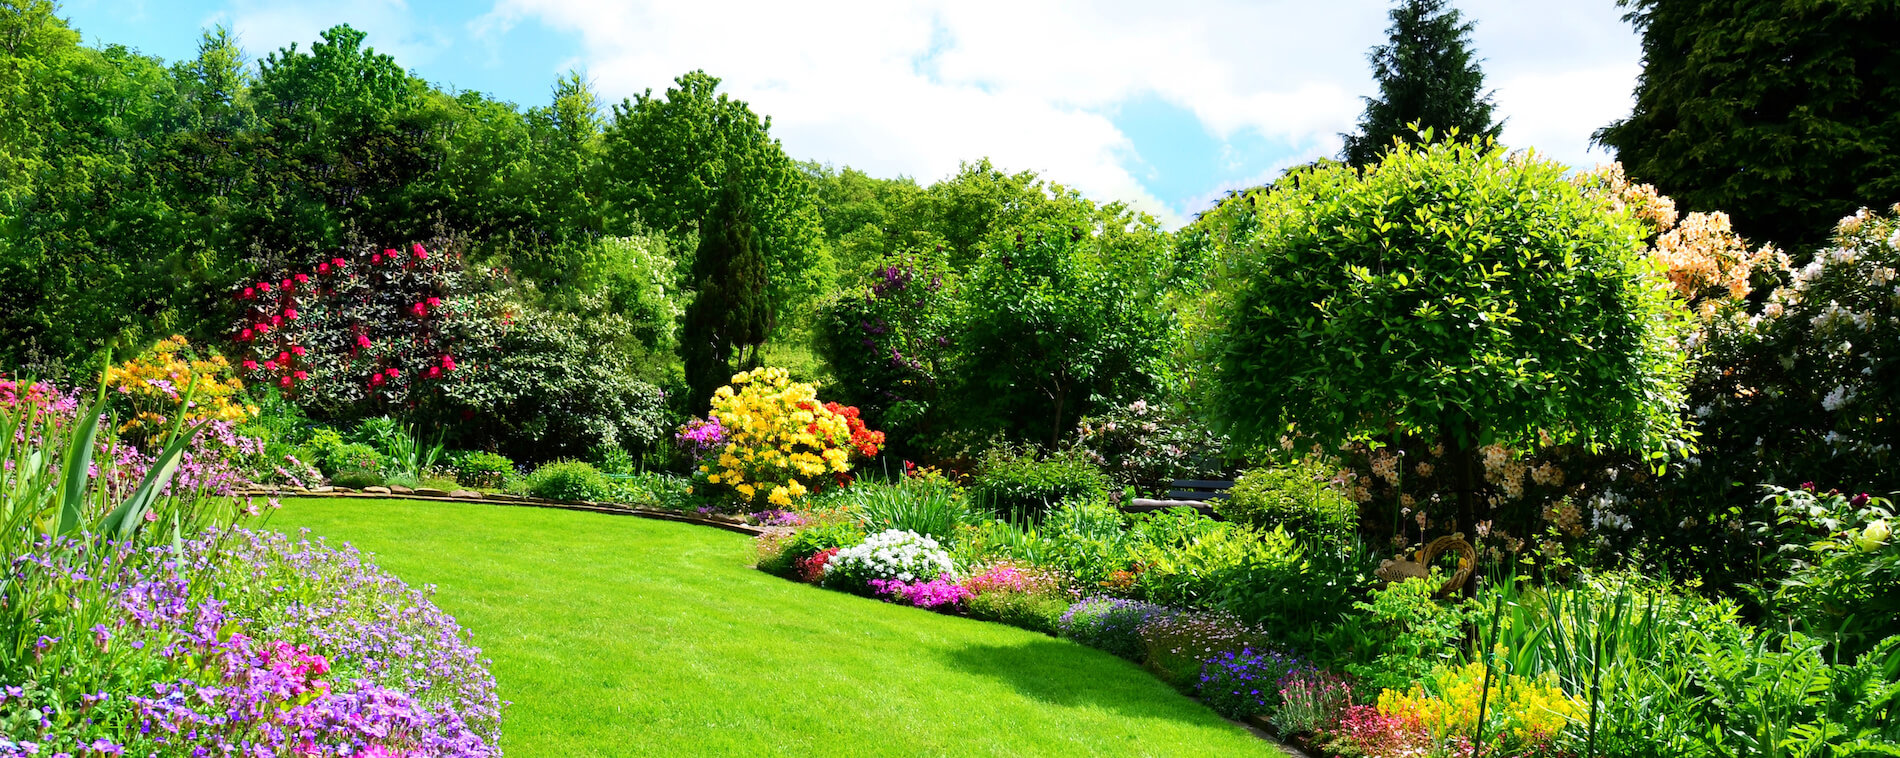 10 Tips For An Environmentally Friendly Garden